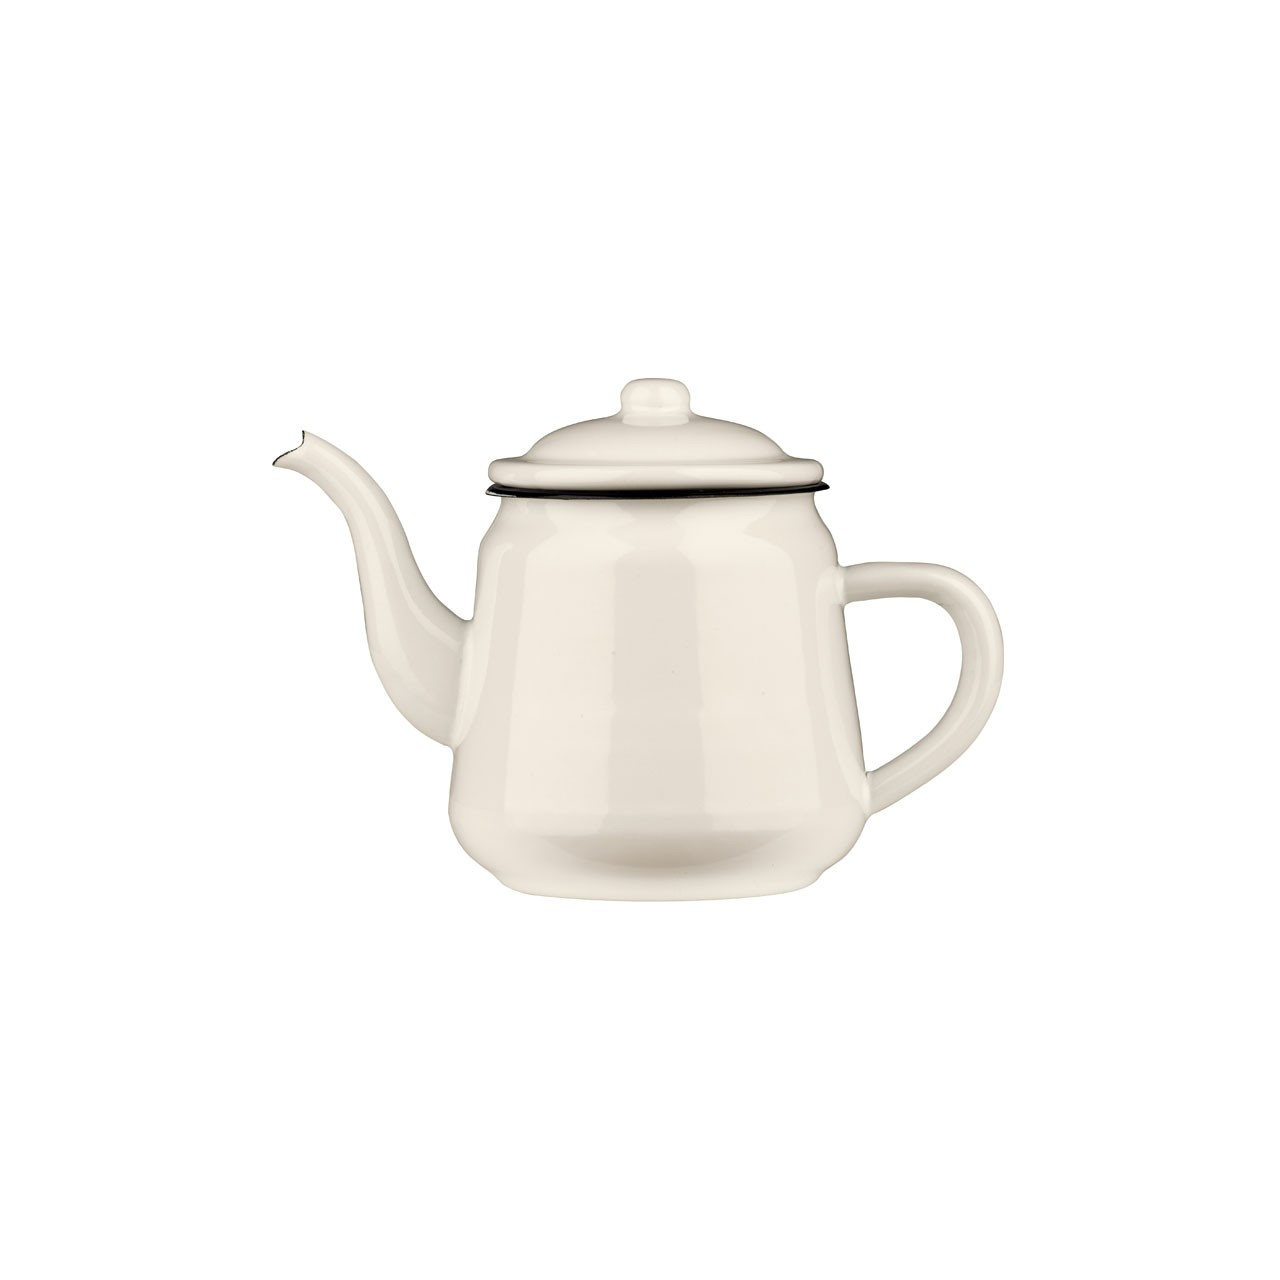 Teapot White Enamel/Dark Blue Rim 900ml